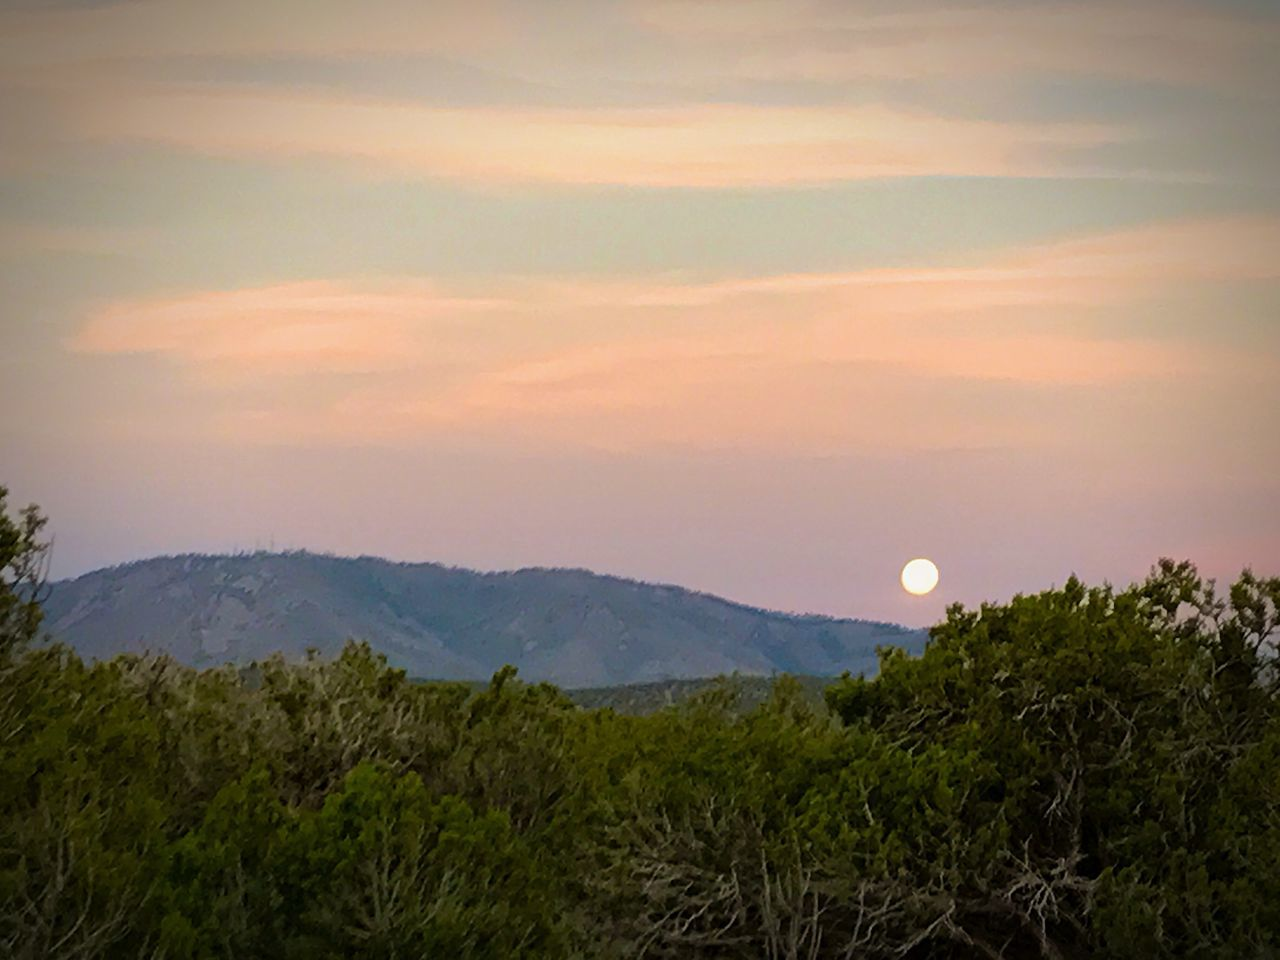 sunset, nature, beauty in nature, scenics, tranquil scene, tranquility, moon, landscape, mountain, sky, no people, outdoors, sun, tree, growth, grass, day, astronomy